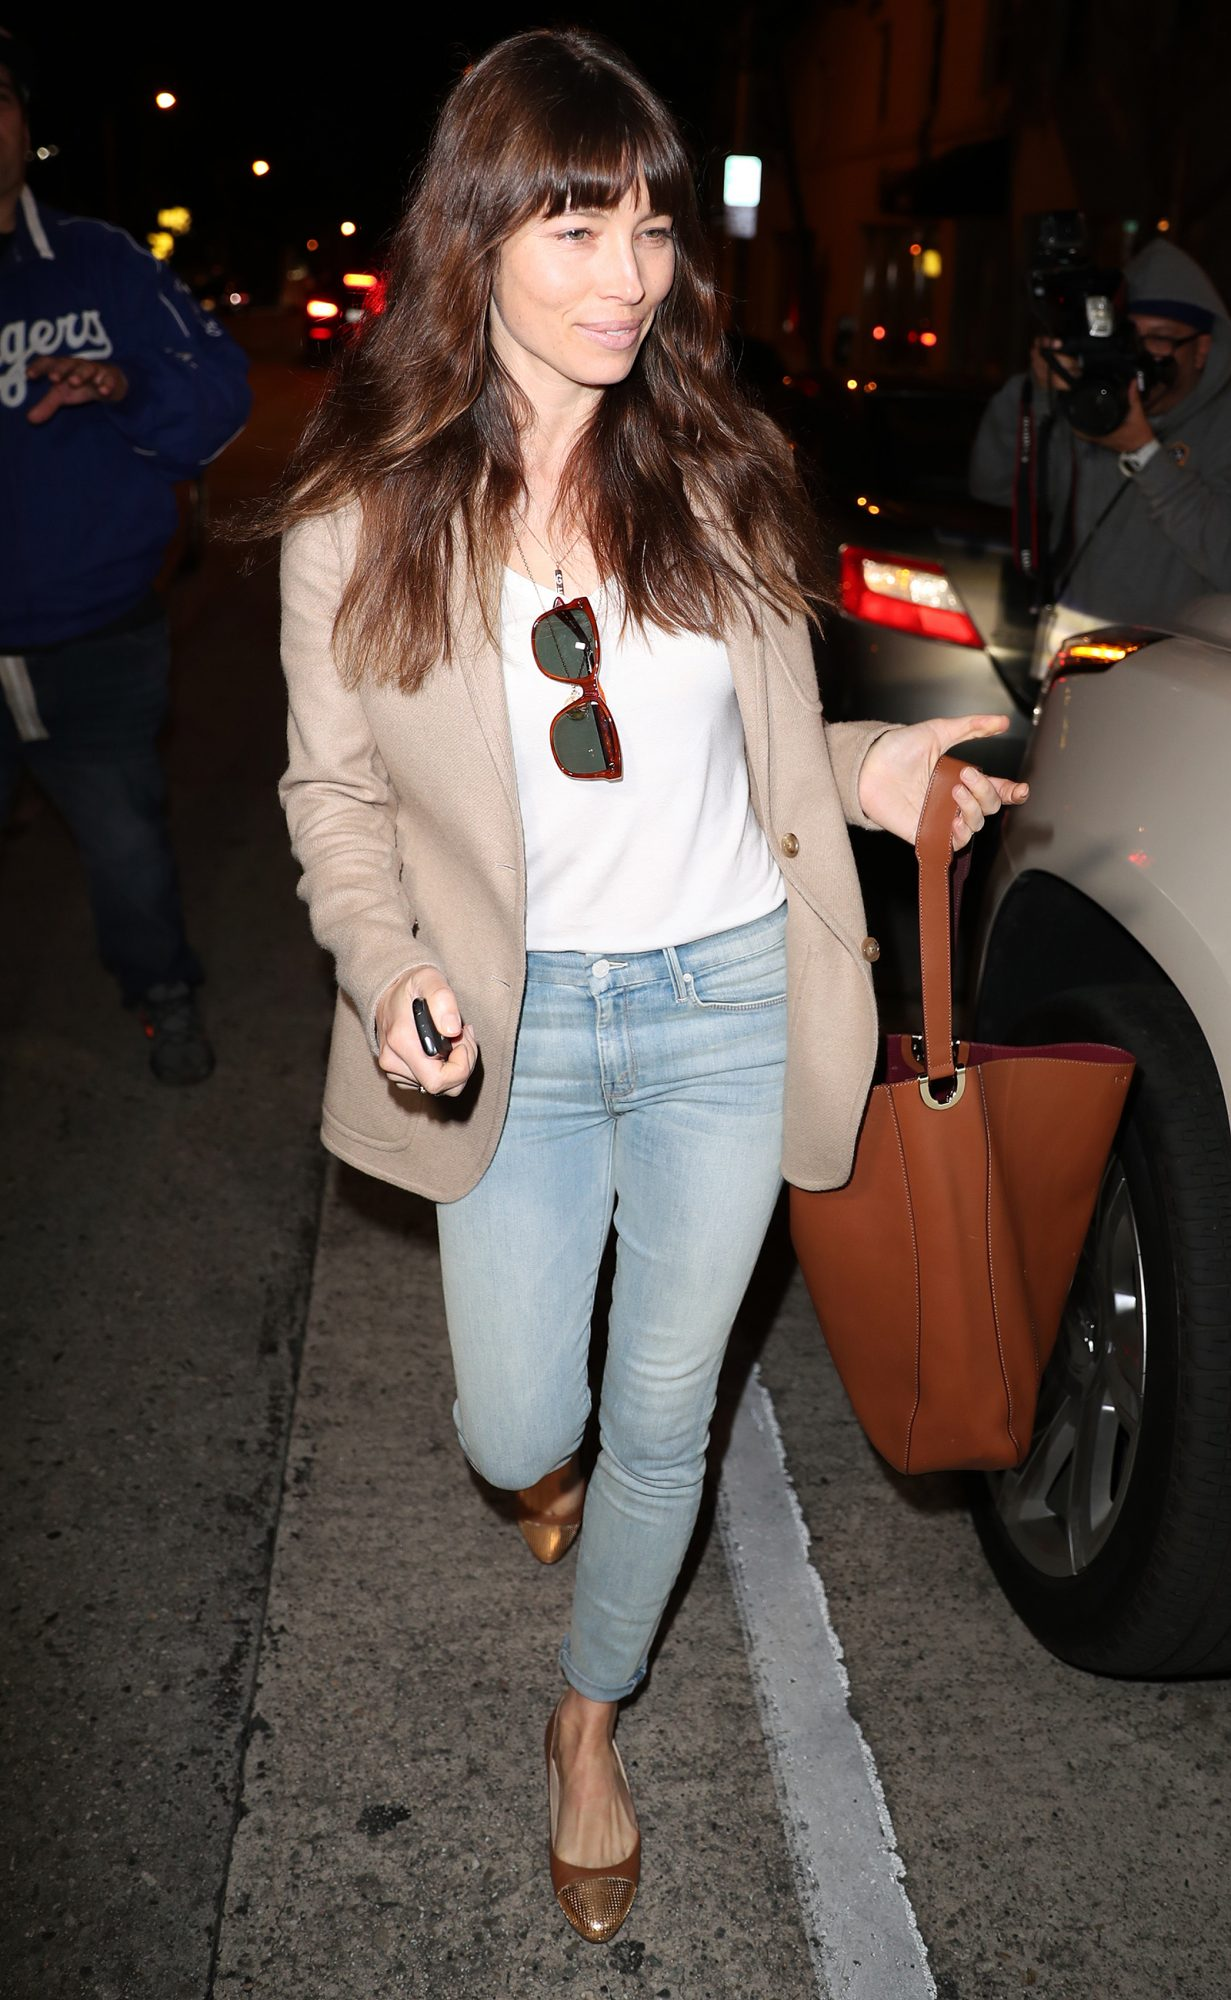 Jessica Biel goes casual in blue jeans and a blazer while leaving her restaurant Au Fudge